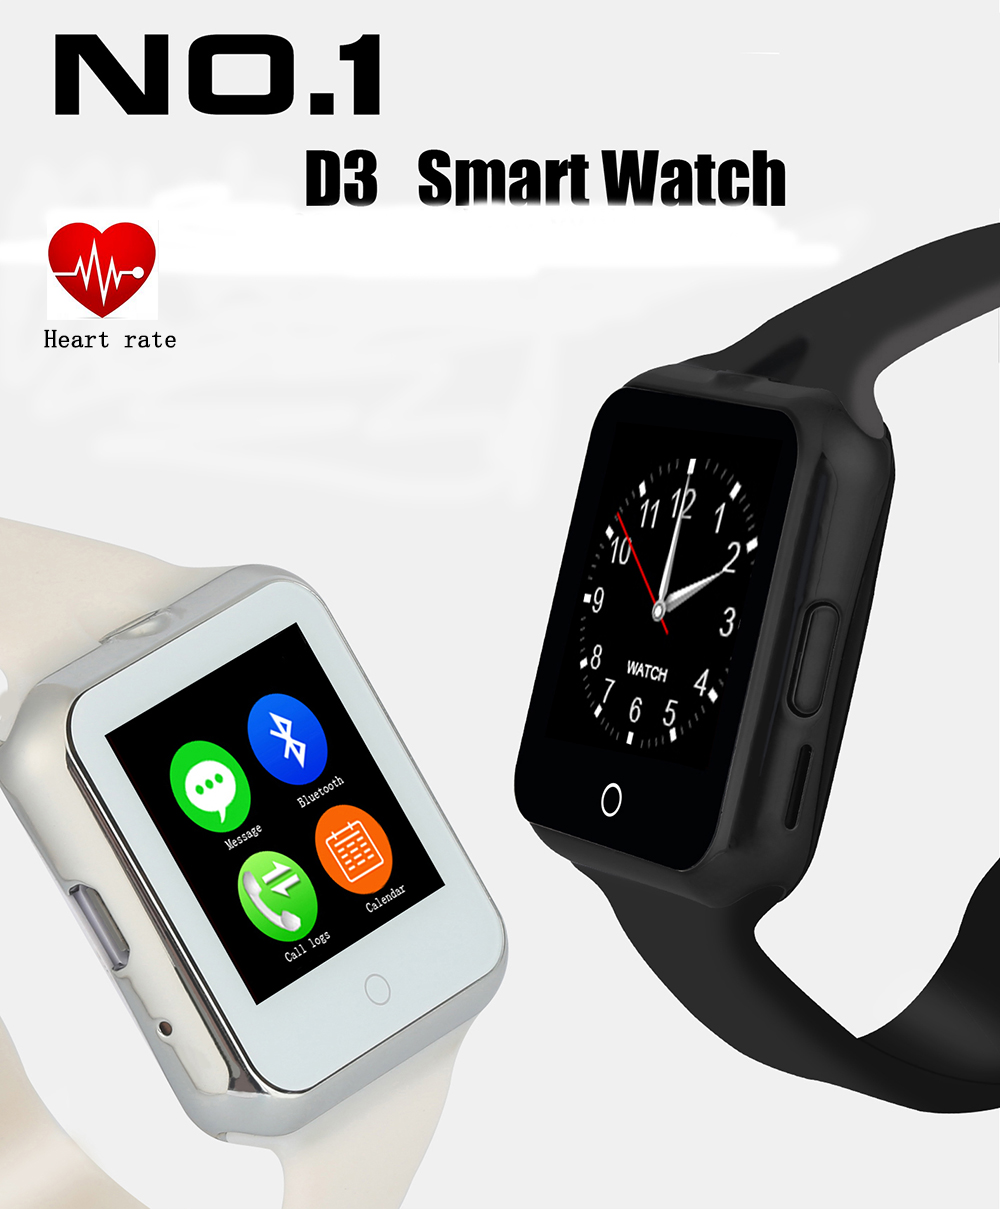 2016 font b Smart b font font b Watch b font D3 Clock Sync Notifier Support